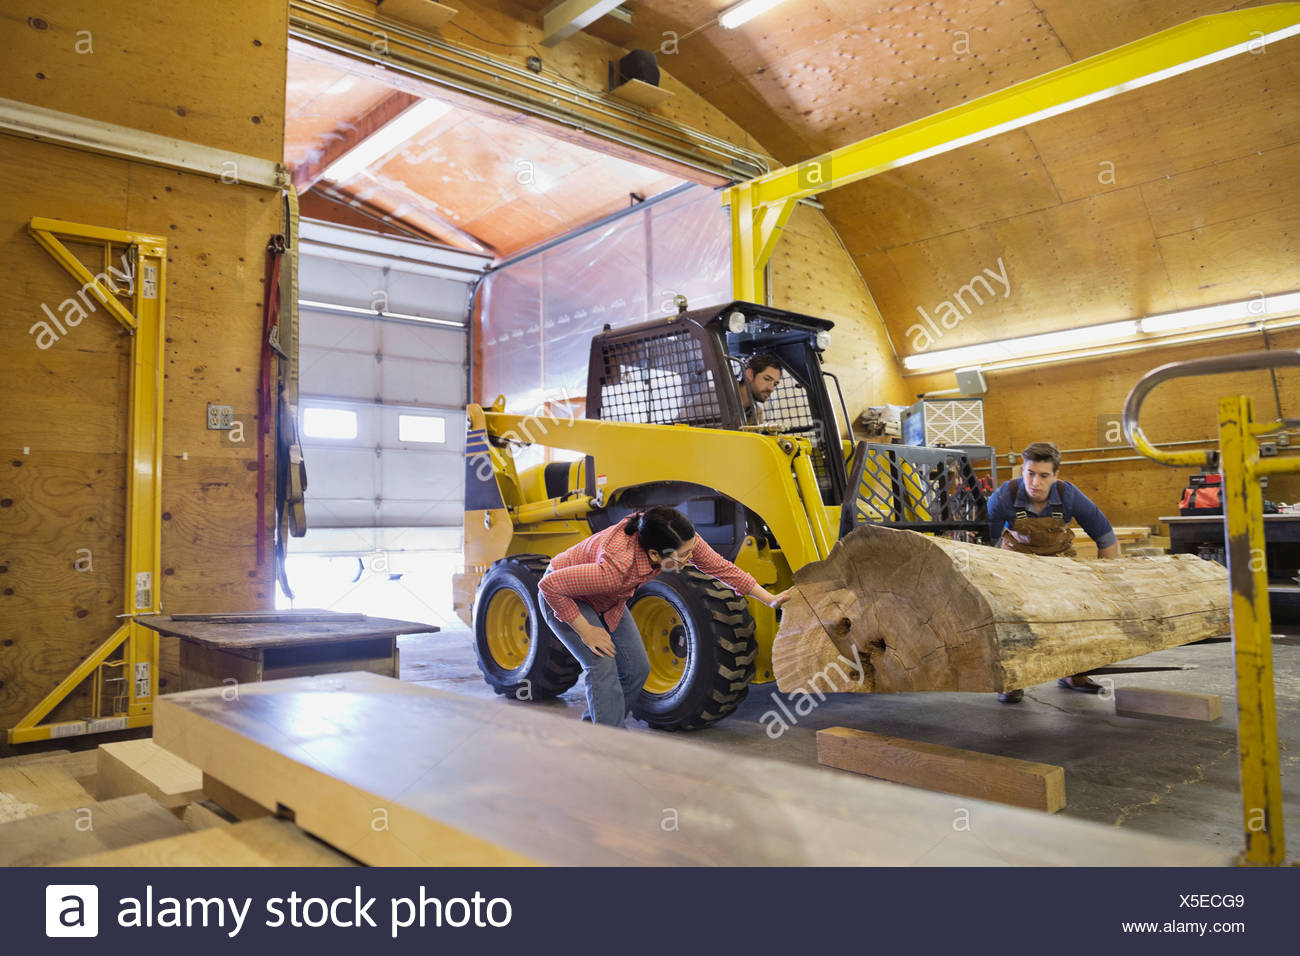 Woodworkers using forklift to move log into workshop - Stock Image